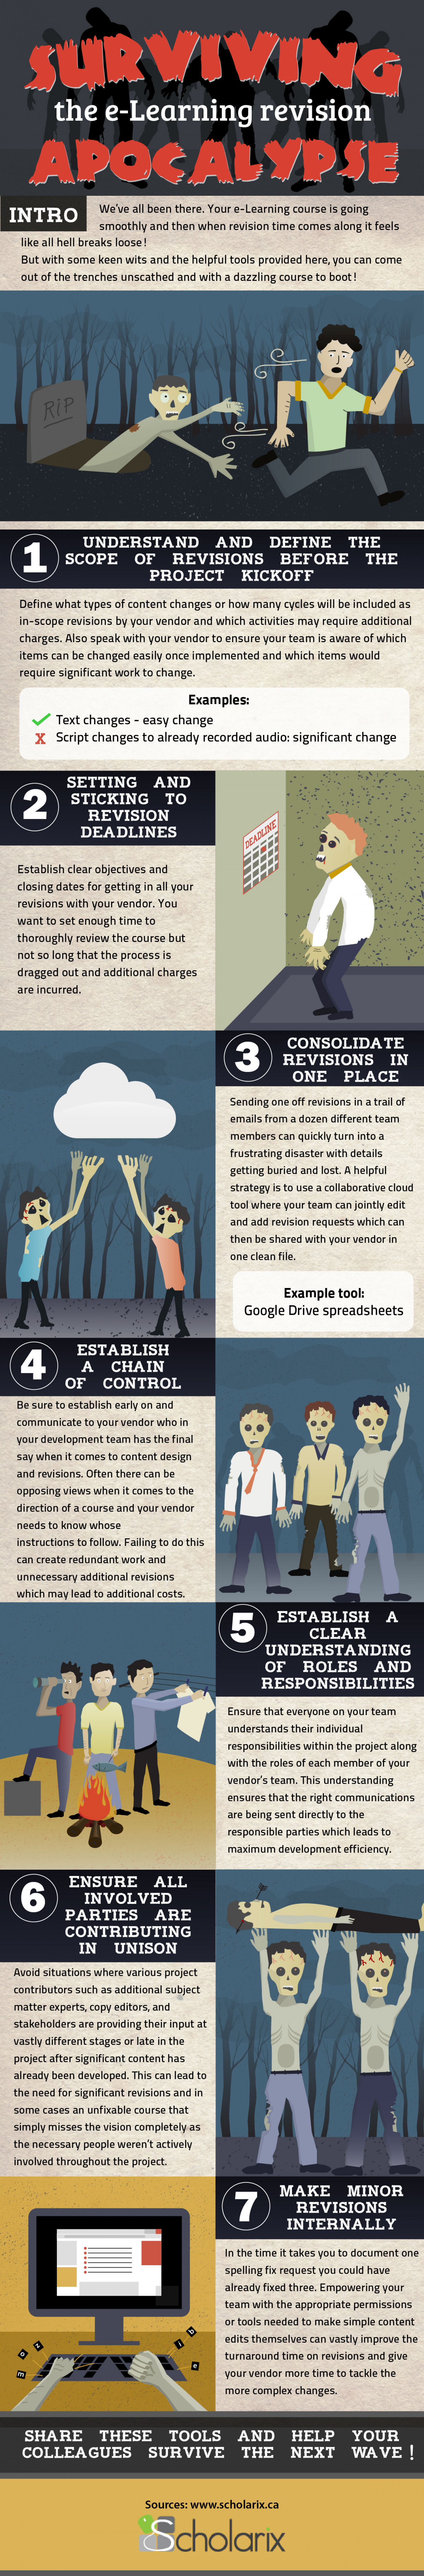 Surviving the e-learning Apocalypse Infographic